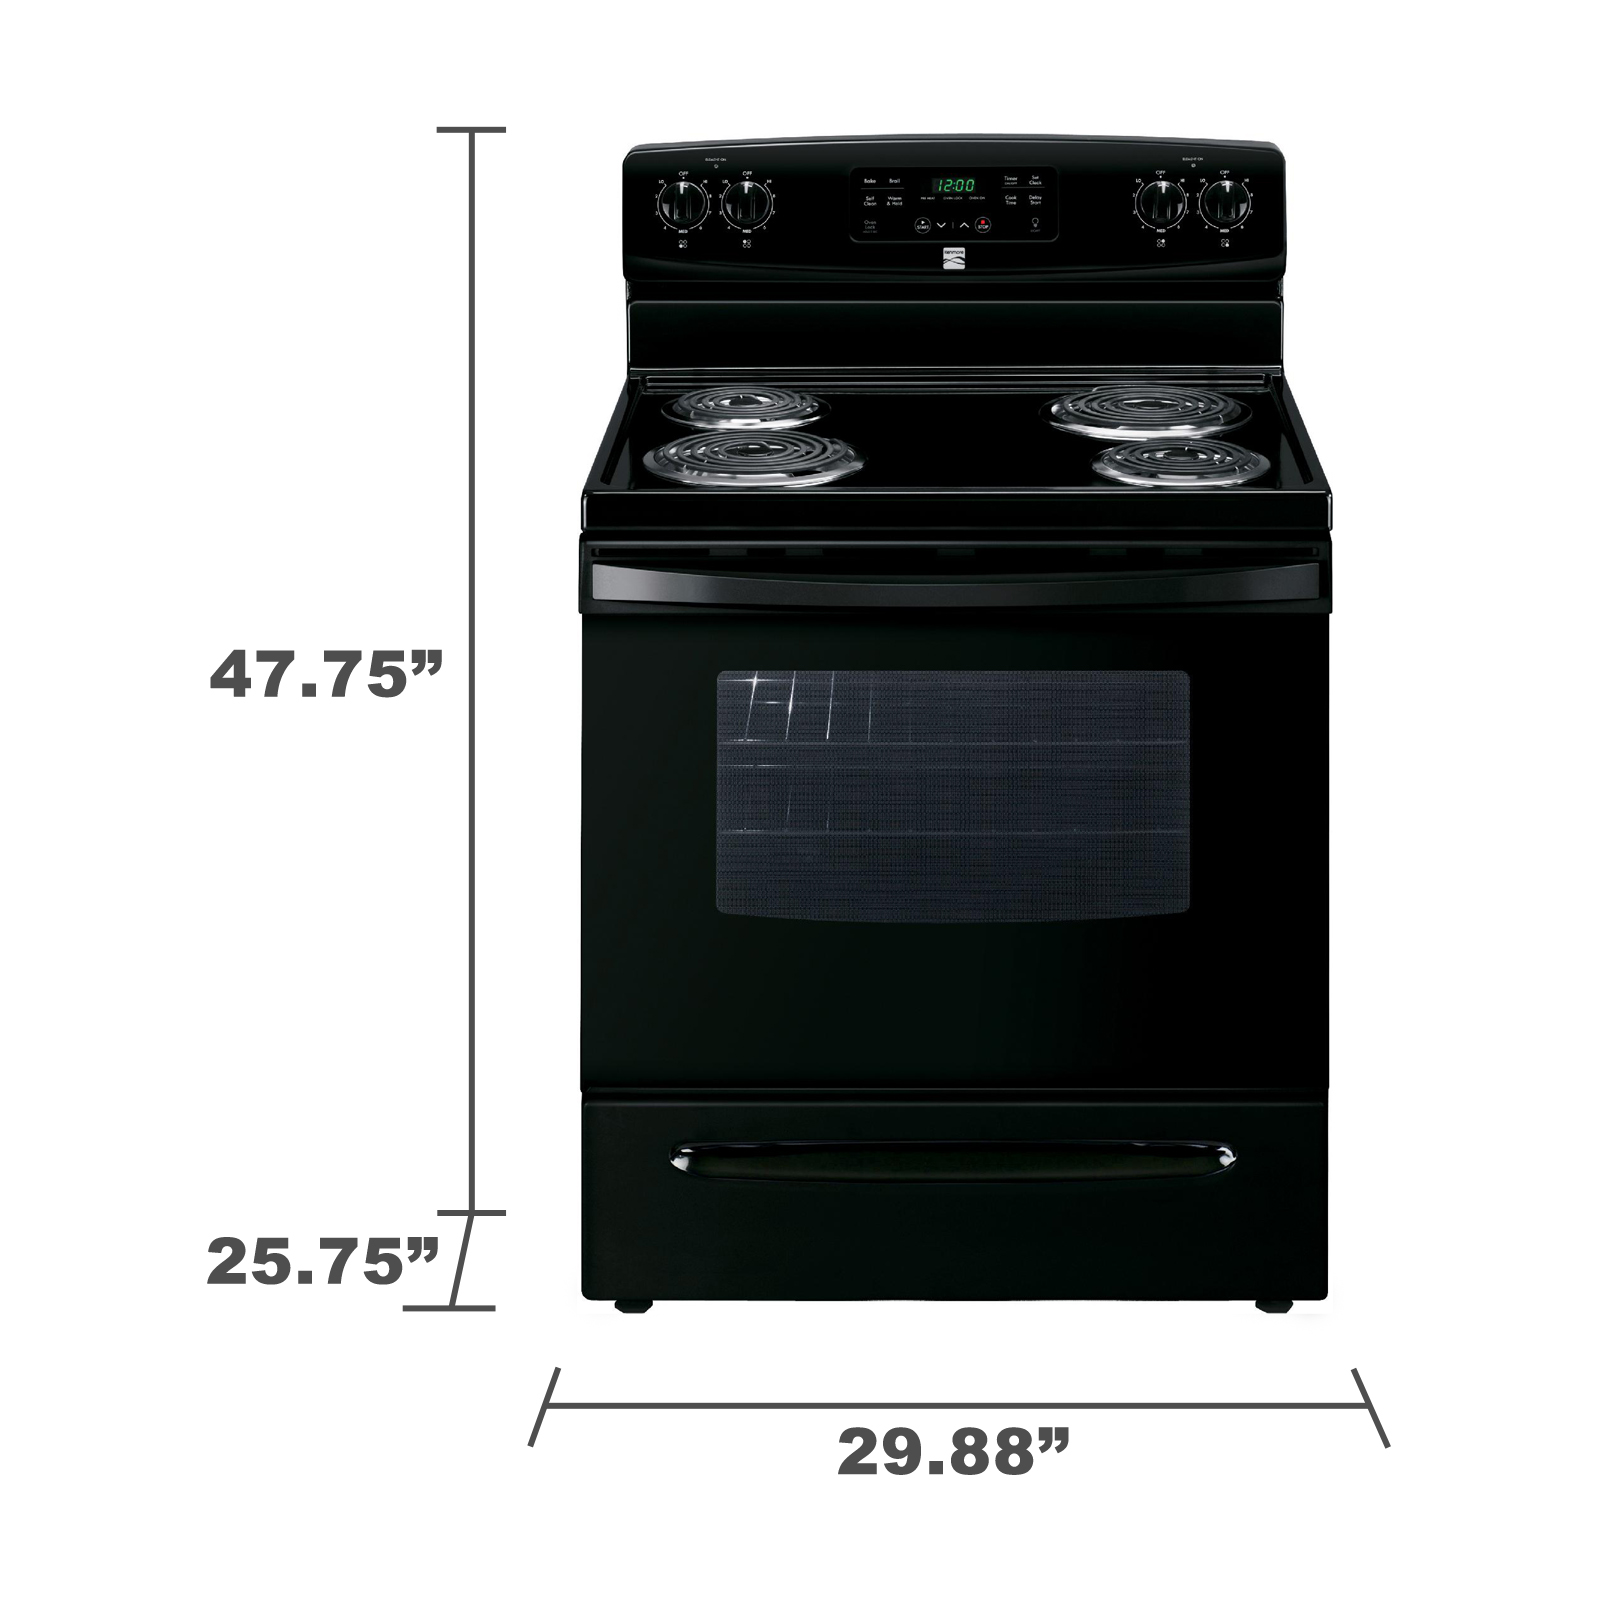 Kenmore 94149 5.3 cu. ft. Electric Range w/ Self-Cleaning Oven - Black